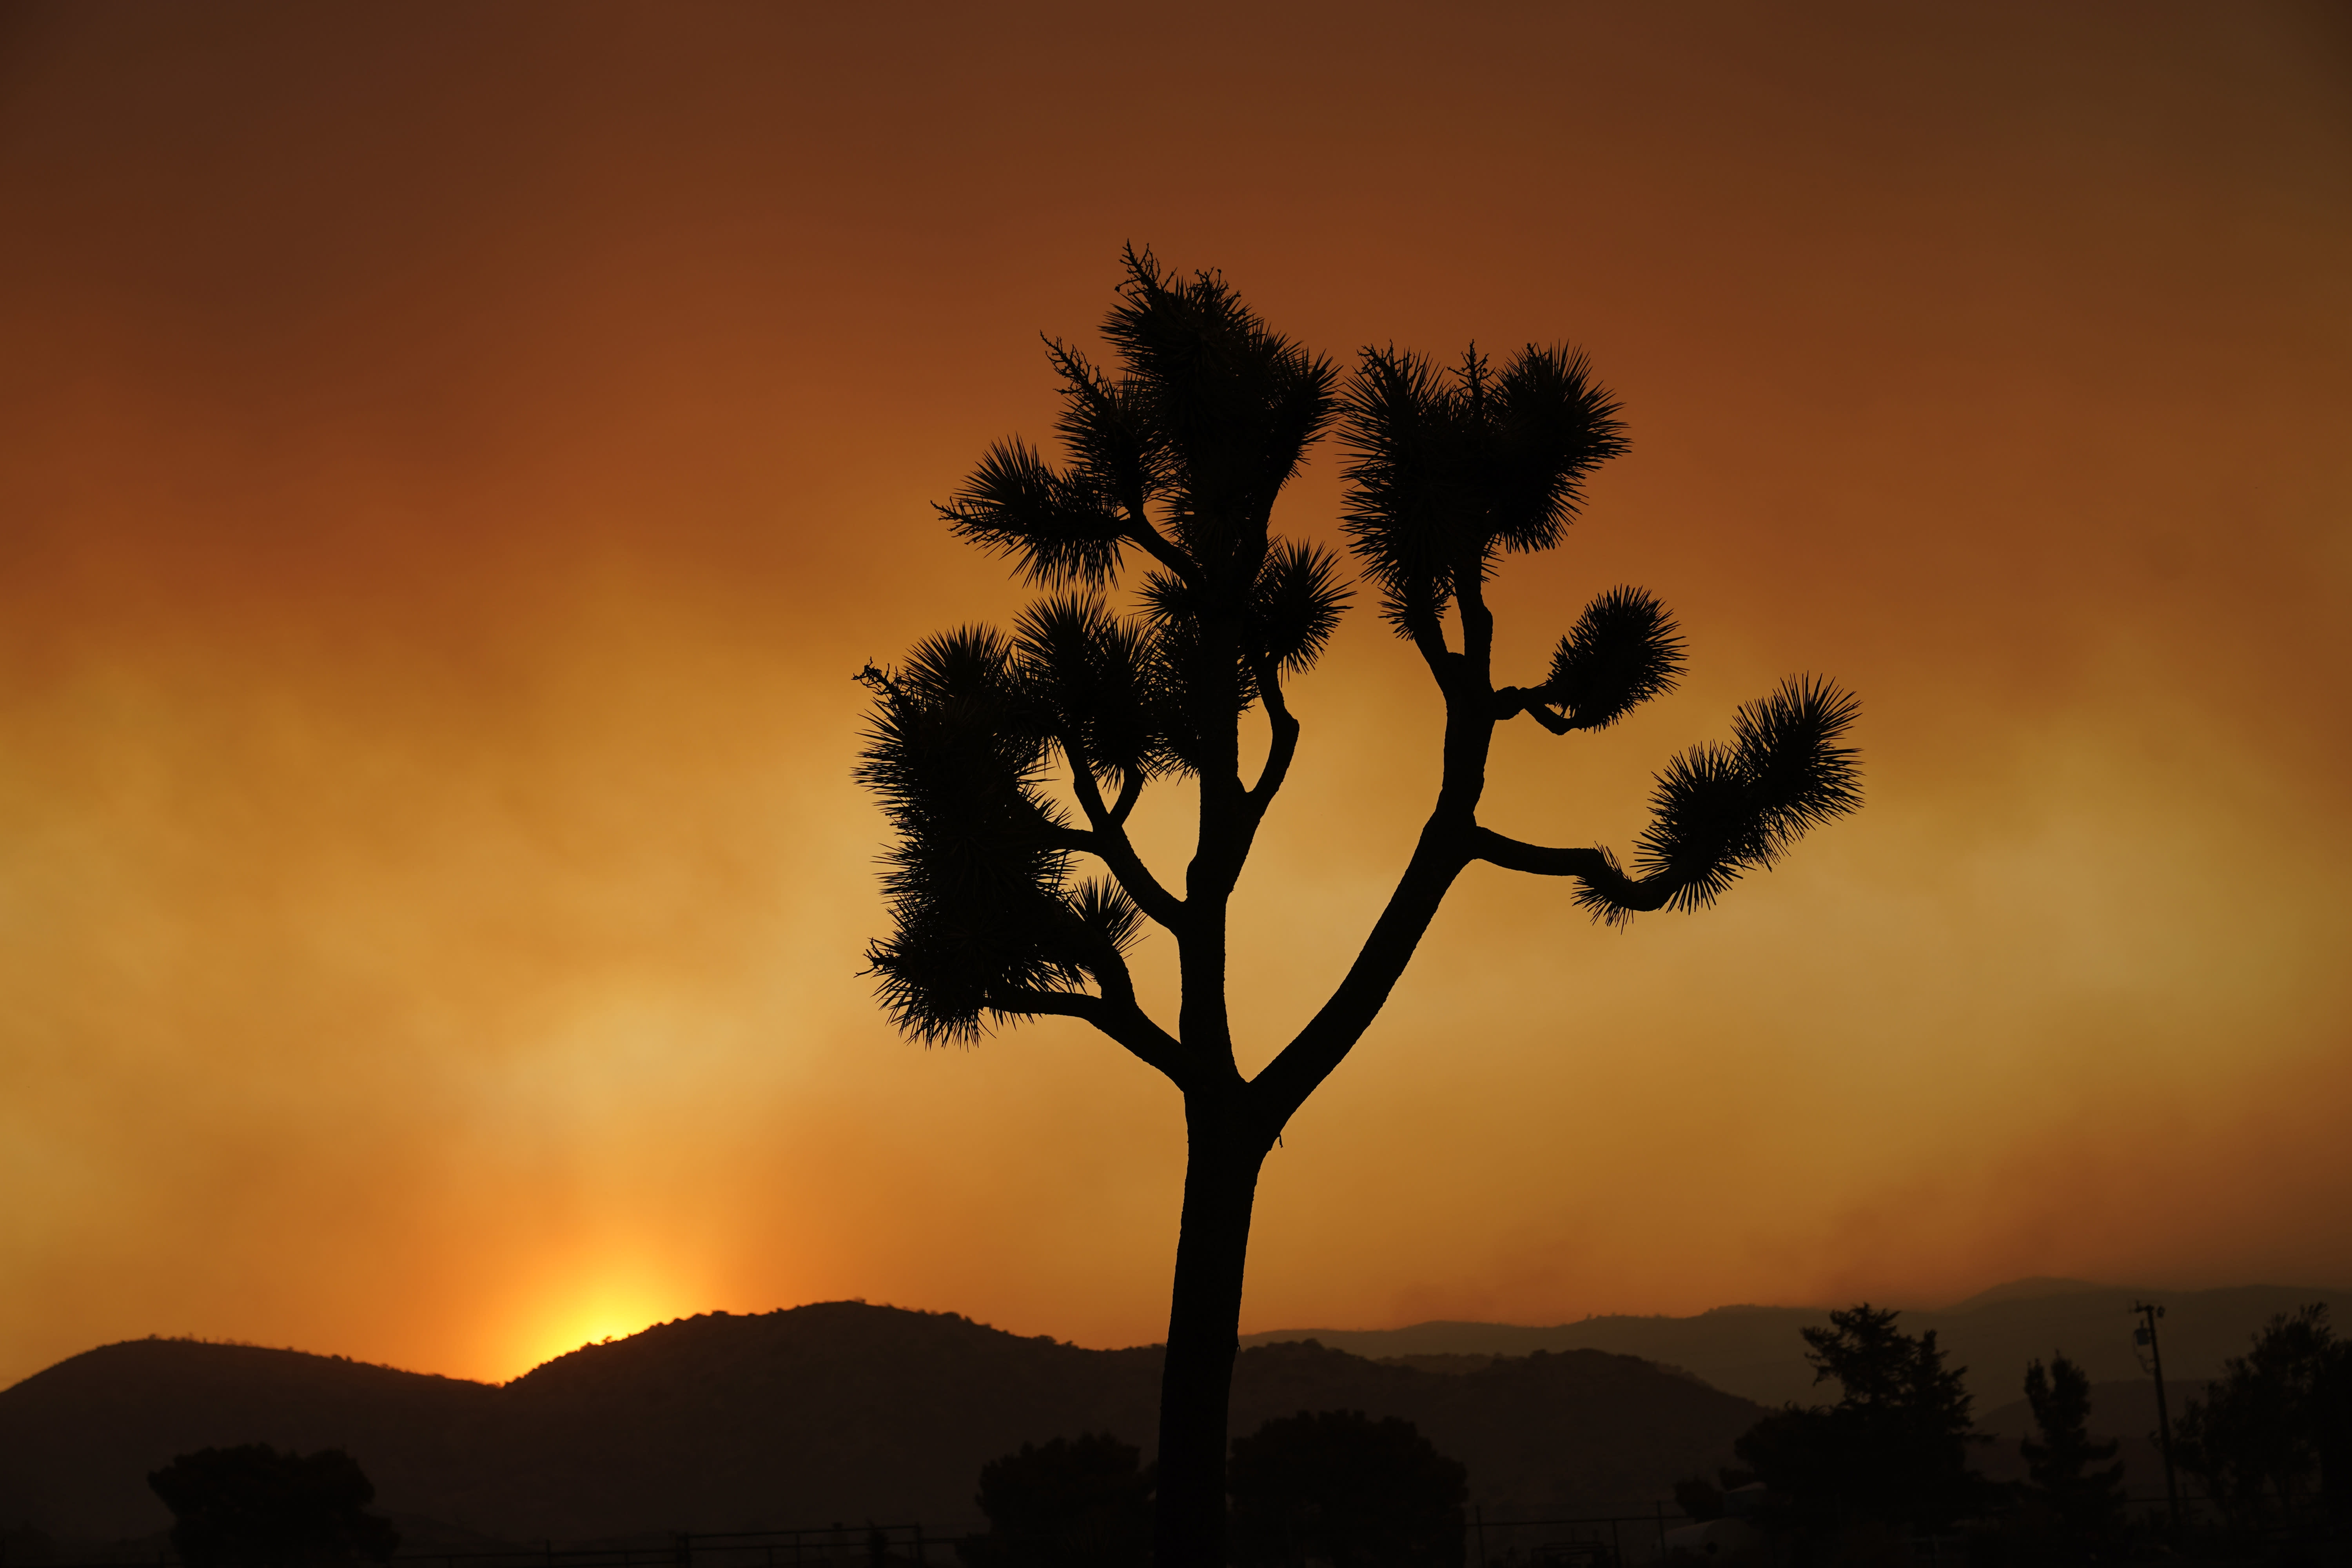 A Joshua tree is silhouetted in front of the Bobcat Fire at sunset Saturday, Sept. 19, 2020, in Juniper Hills, Calif. (AP Photo/Marcio Jose Sanchez)